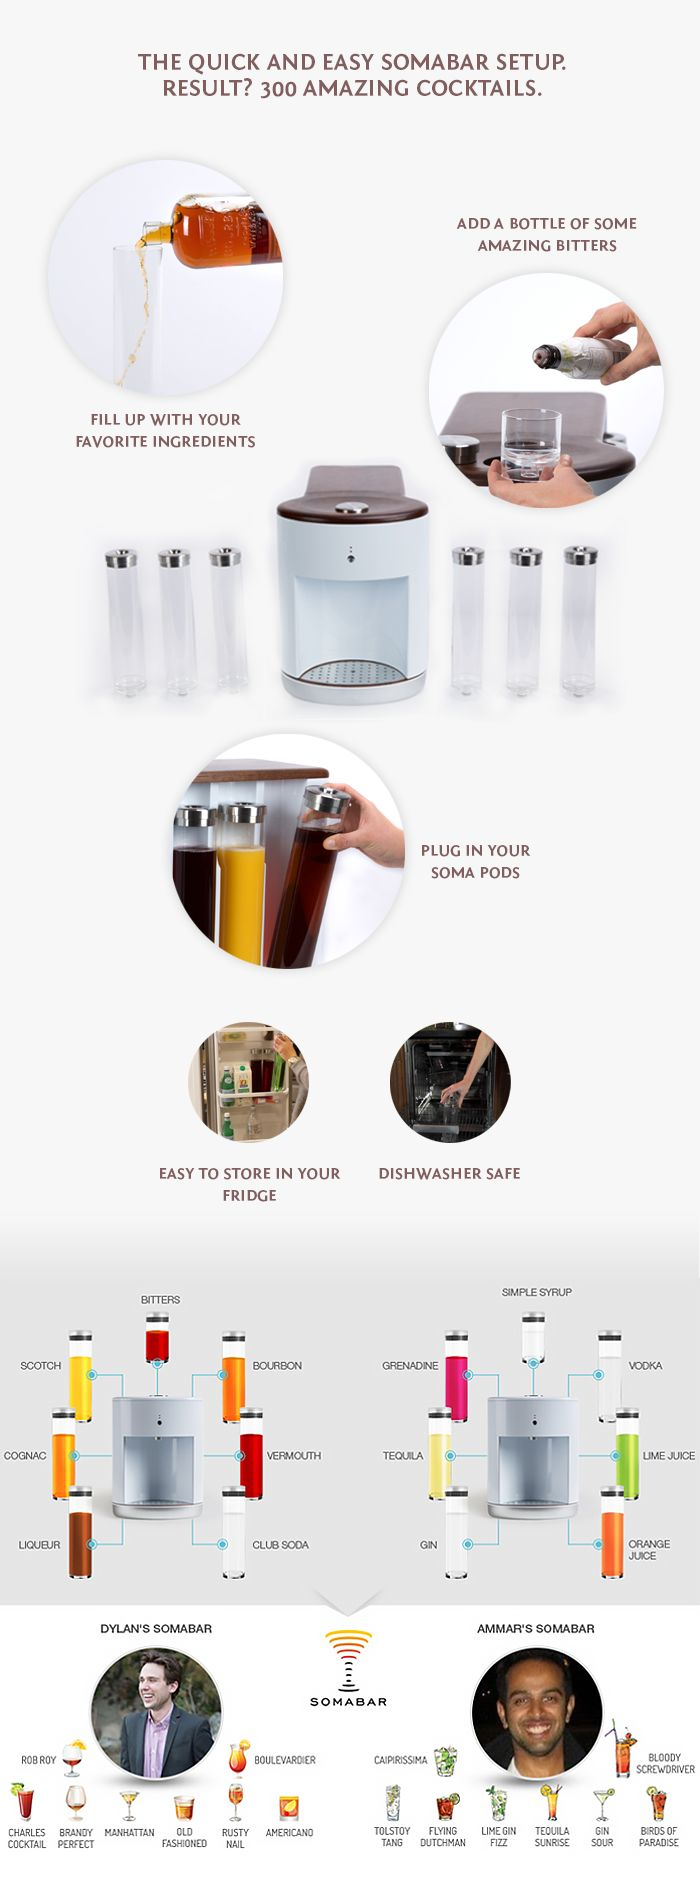 Somabar: Robotic Bartender for your Home by Somabar — Kickstarter. Makes 300 different cocktails with ur cell phone! SHUT UP AND TAKE MY MONEY!!#